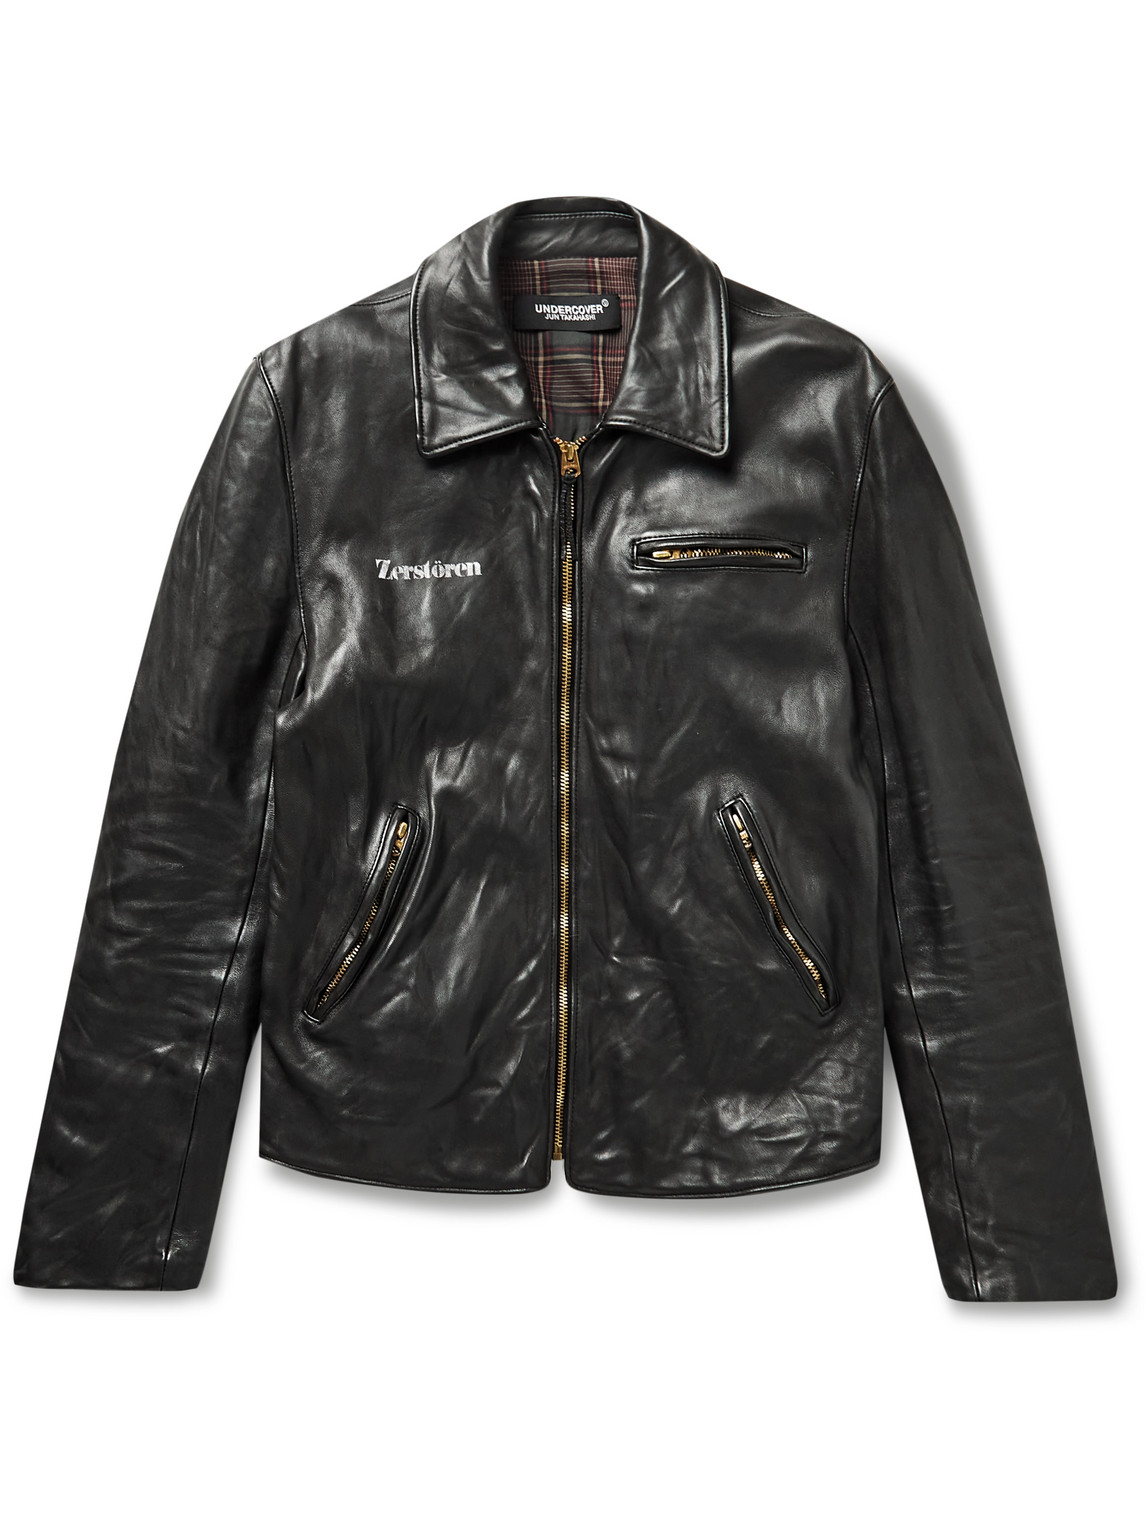 Undercover PRINTED CREASED-LEATHER JACKET